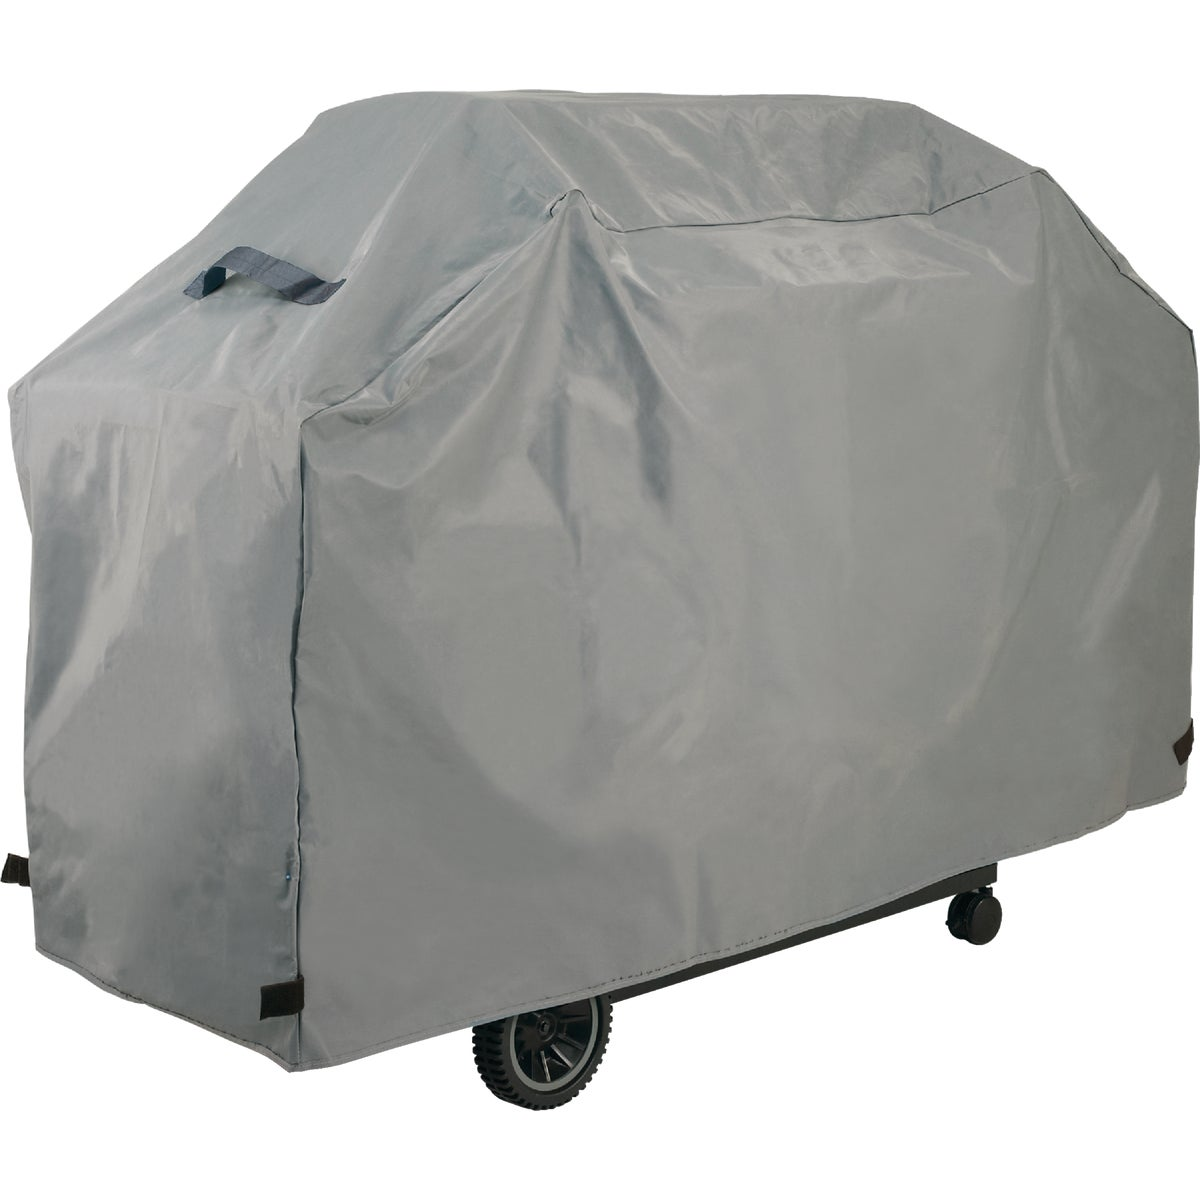 GRILL COVER - 50568 by Onward Multi Corp  N